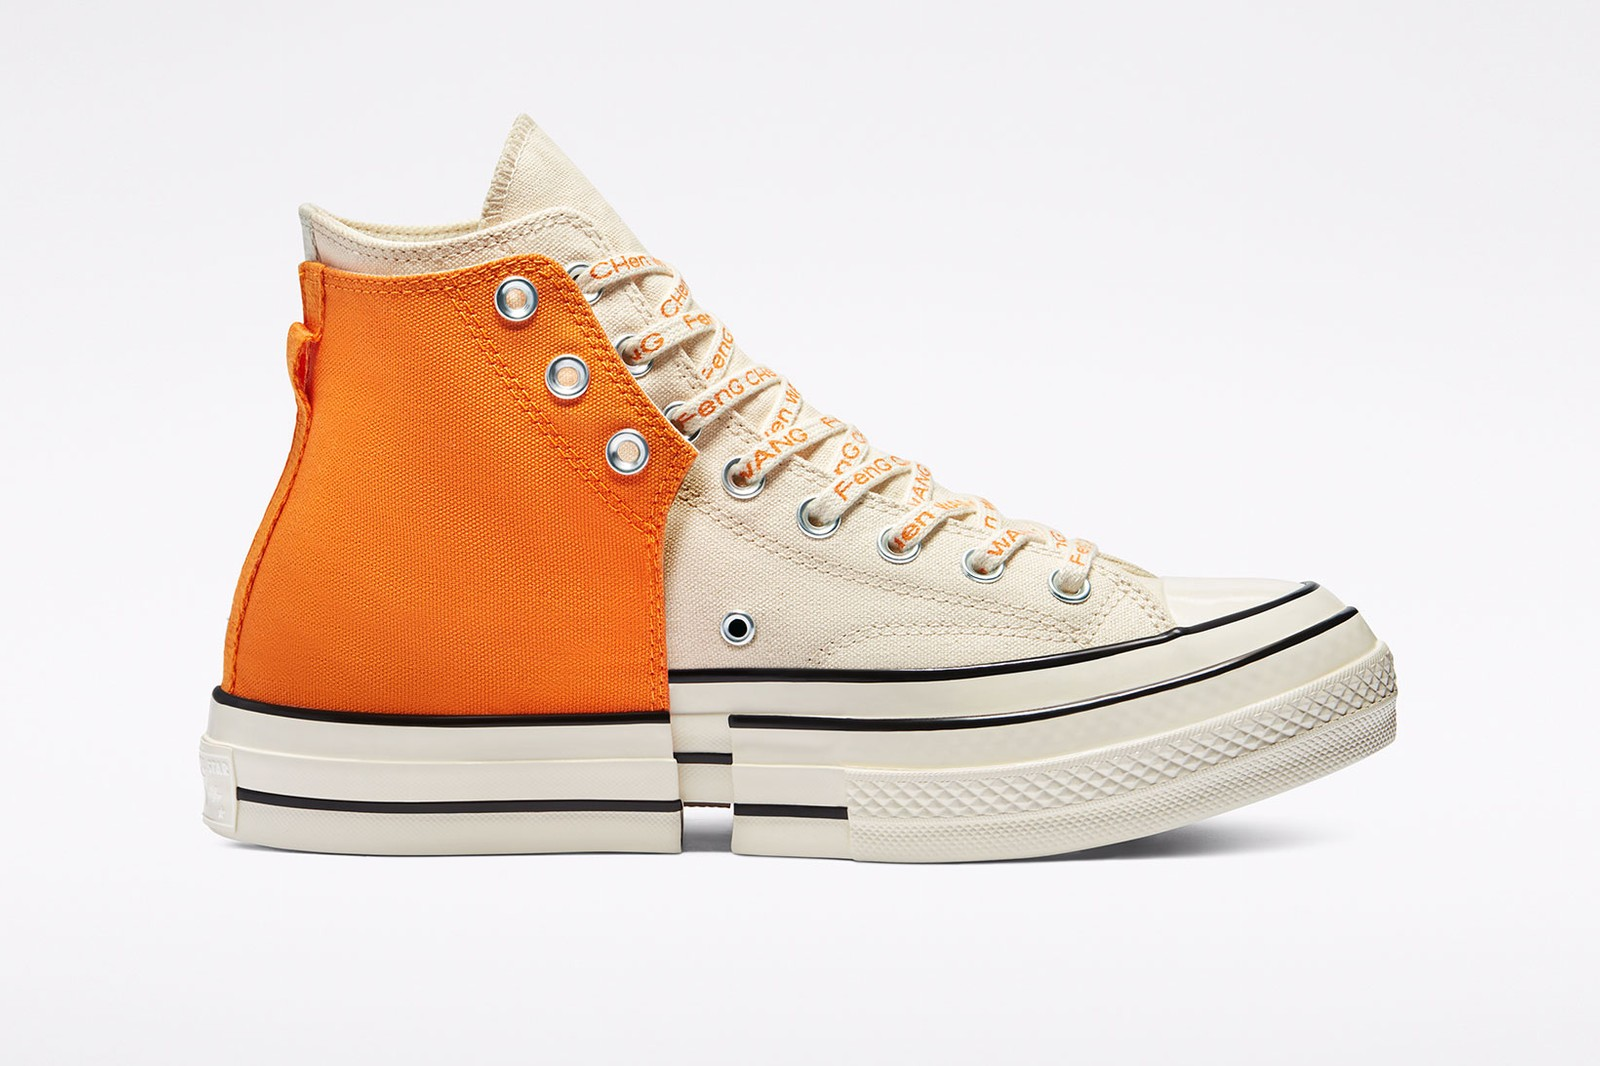 feng chen wang converse chuck 70 2 in 1 high top deconstructed sneakers black white orange collaboration